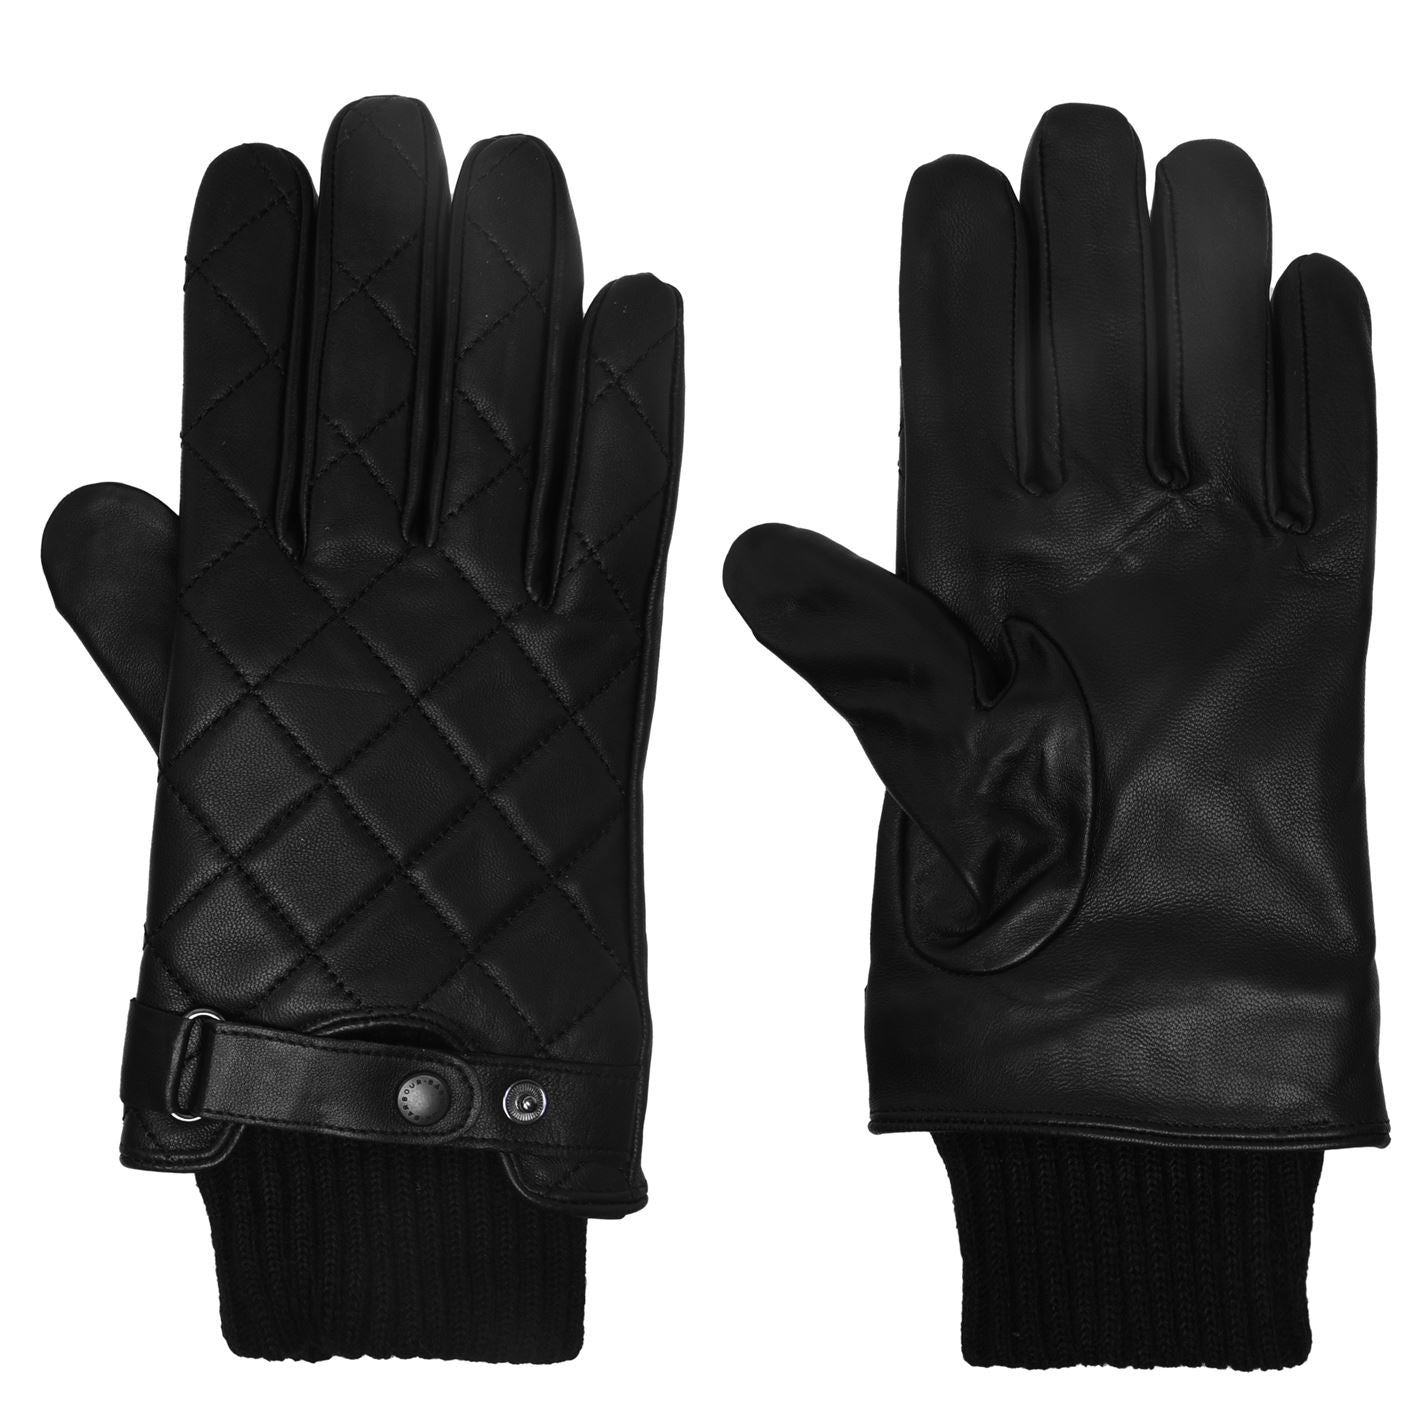 ID8129-Barbour Black Quilted Leather Gloves